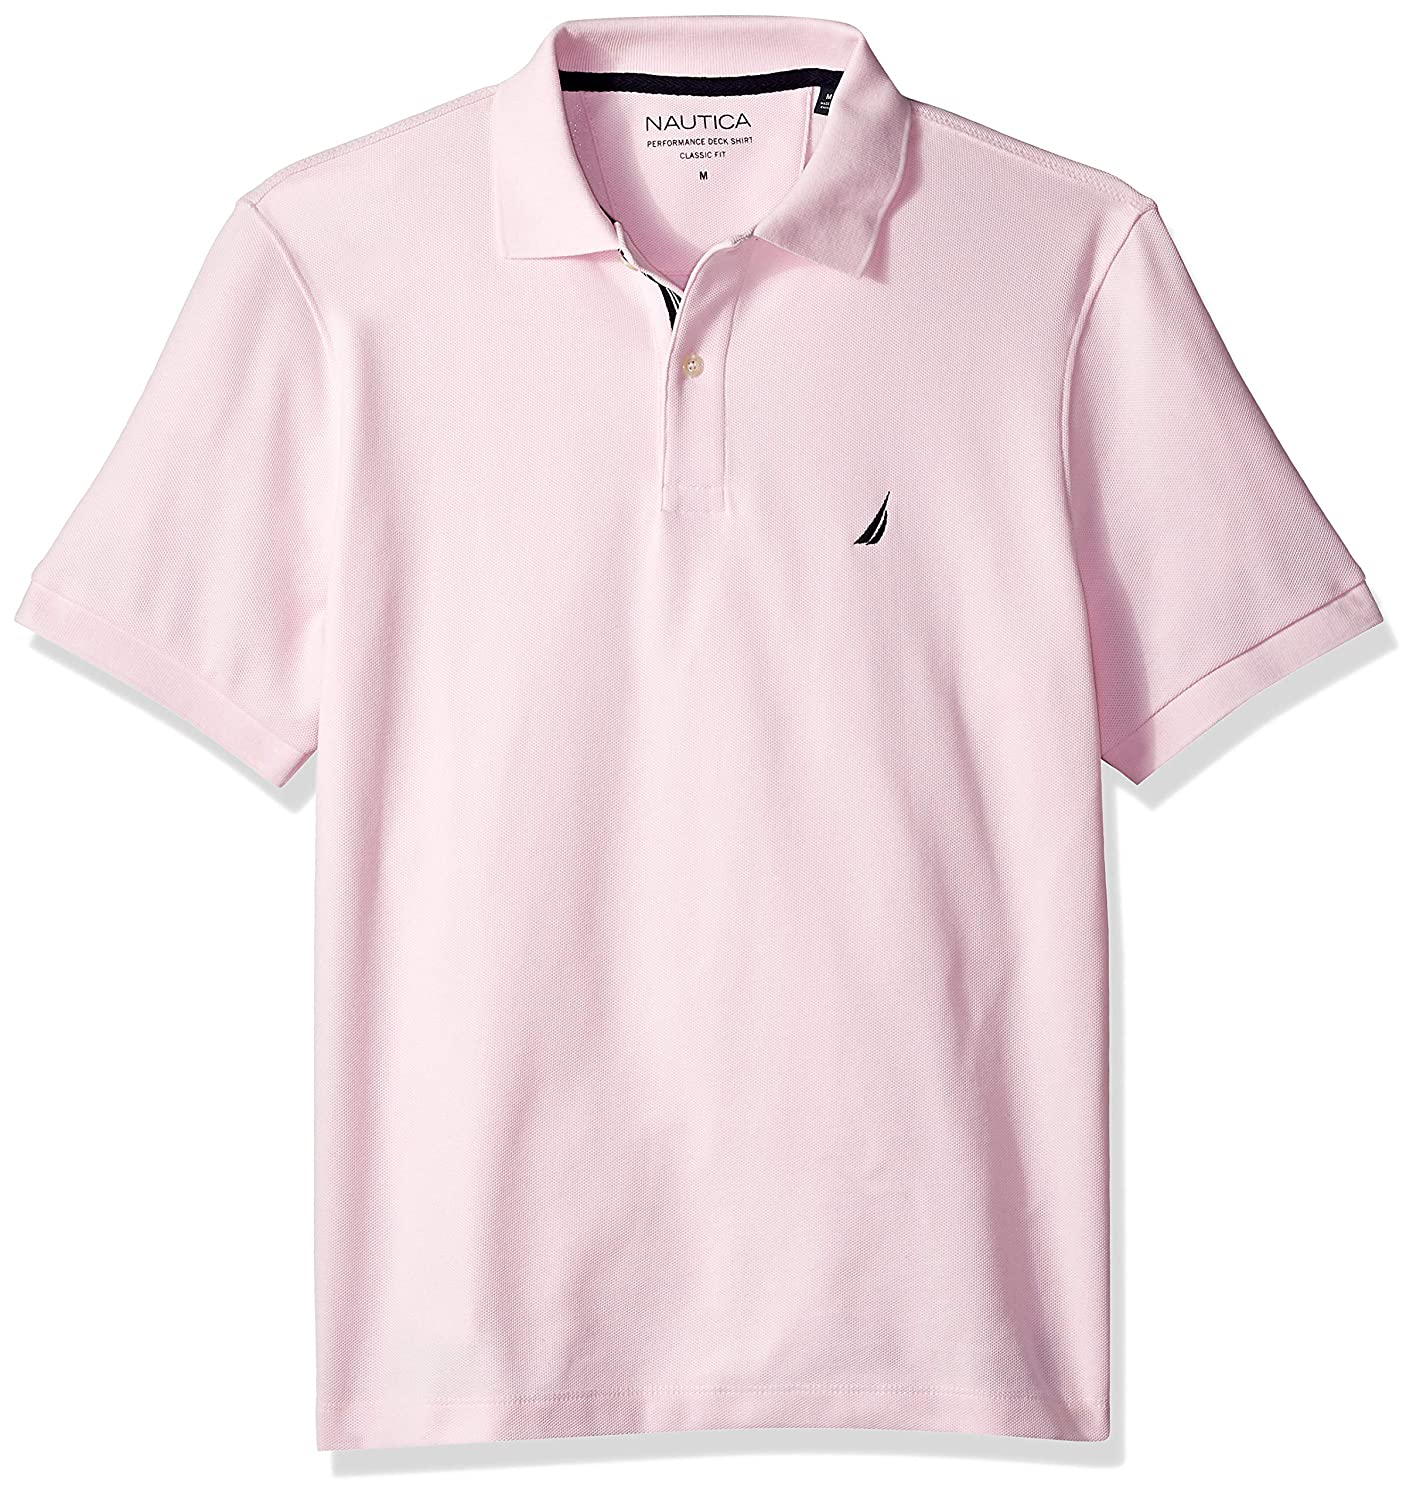 Nautica Mens Classic Fit Short Sleeve Solid Polo Shirt